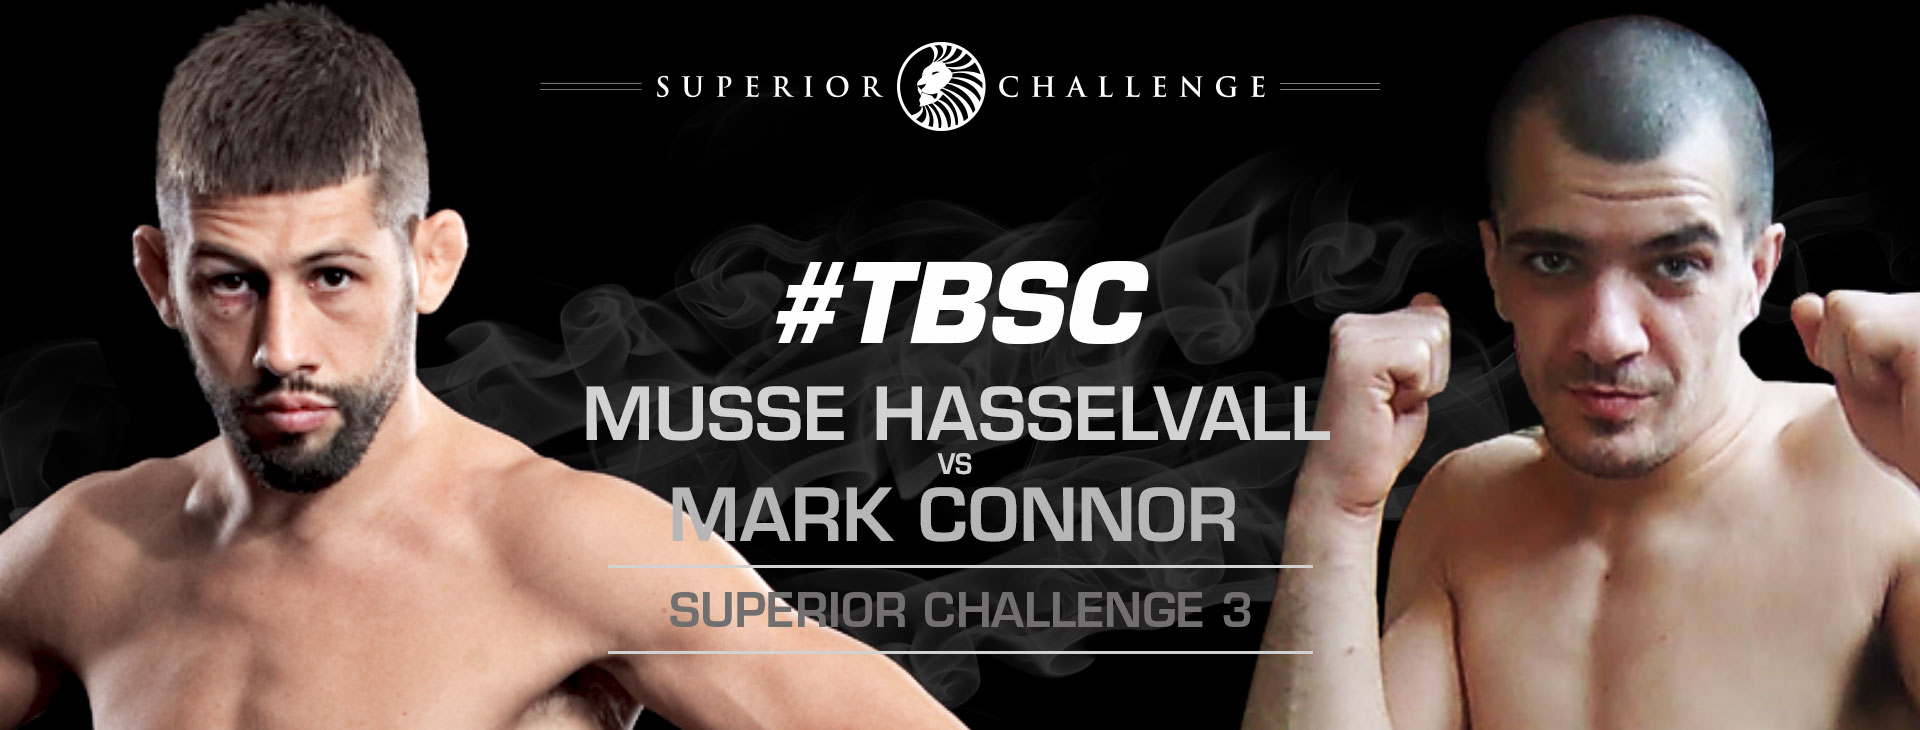 Musse Hasselvall vs Mark Connor at Superior Challenge 3